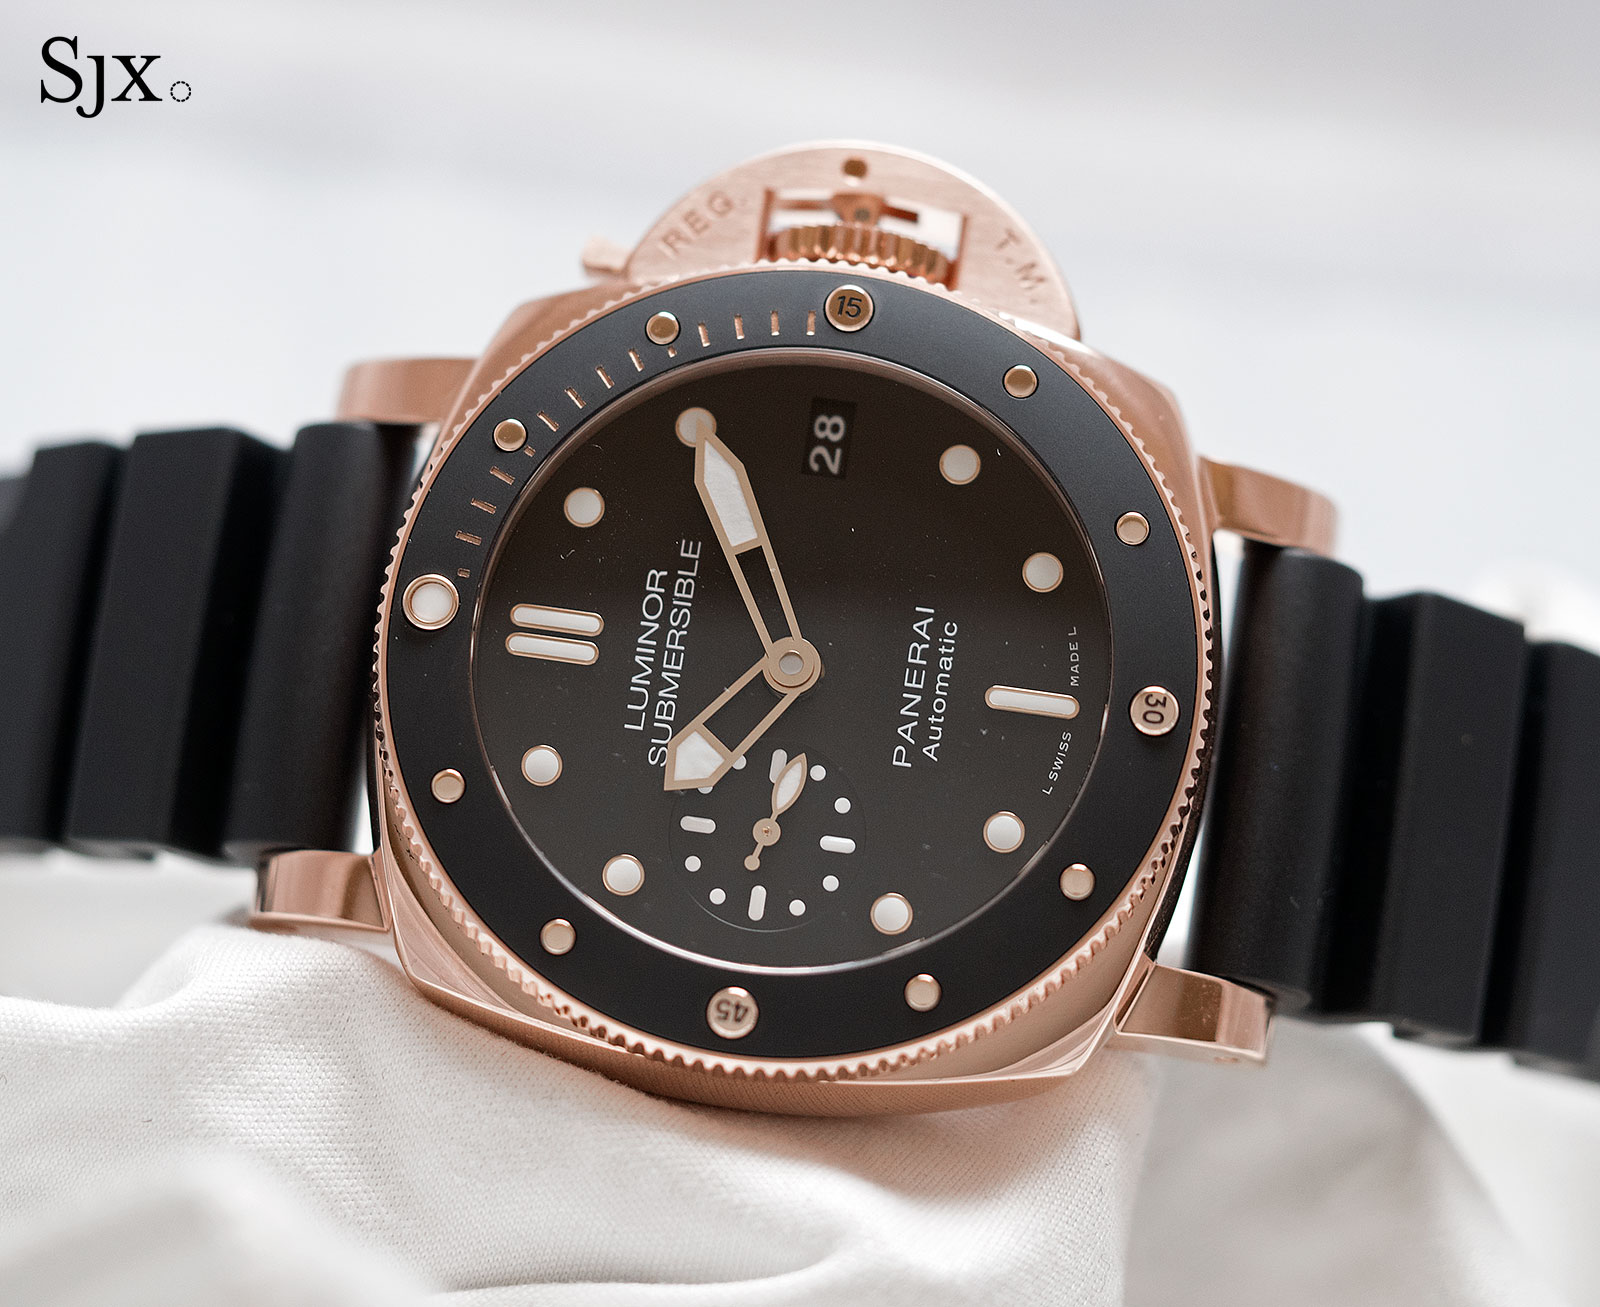 Panerai Luminor Submersible 1950 Oro Rosso 42mm PAM684-1